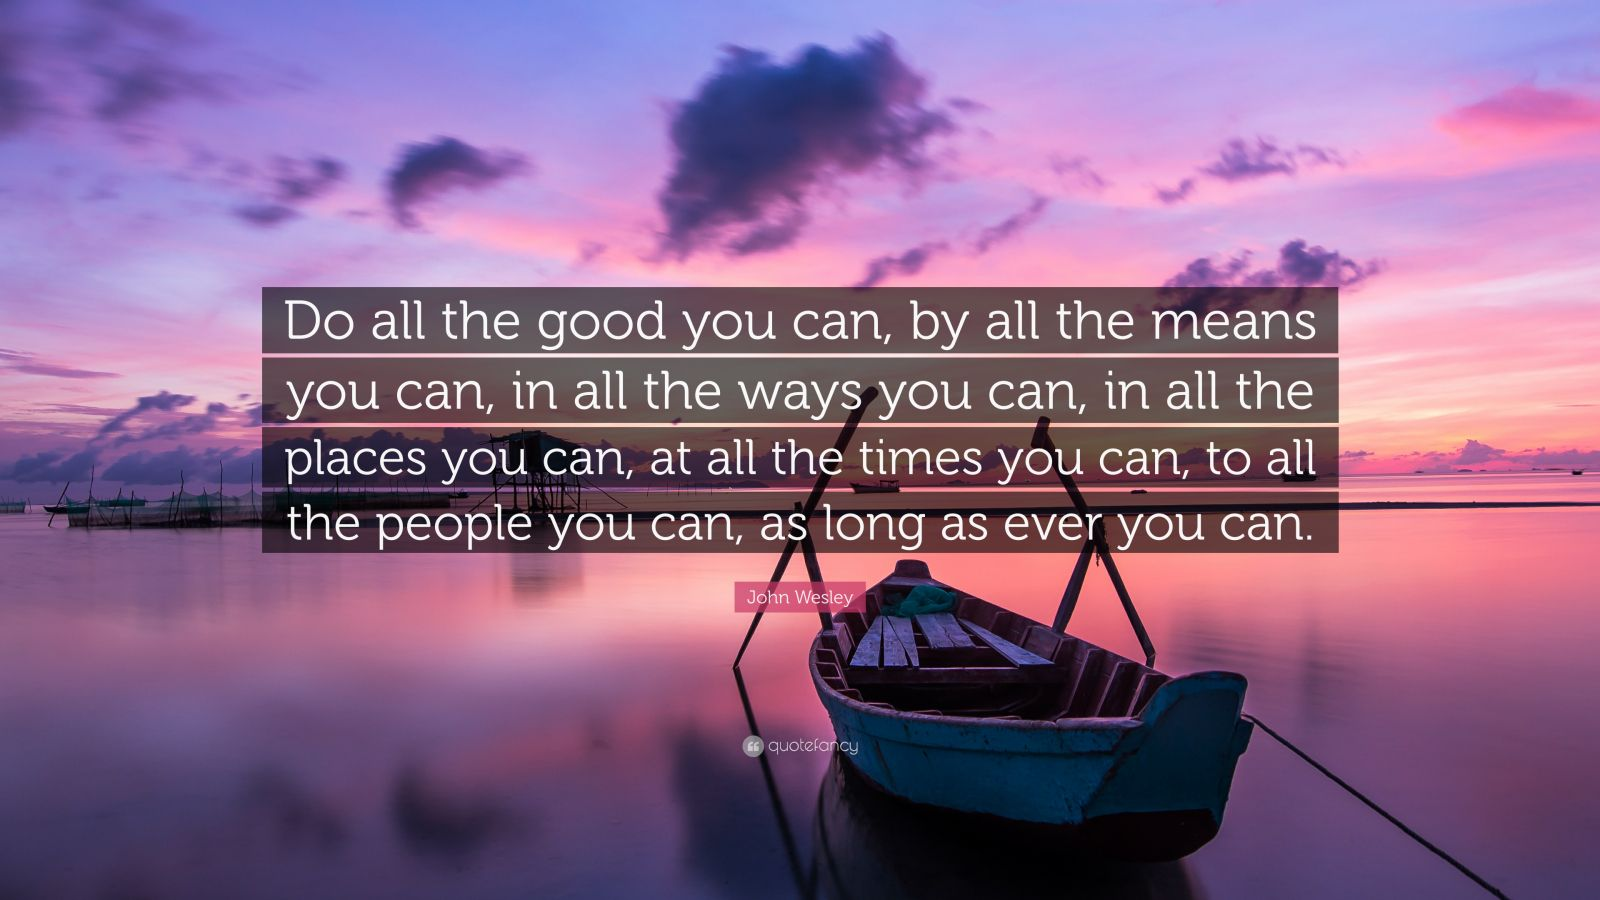 john wesley quote �do all the good you can by all the